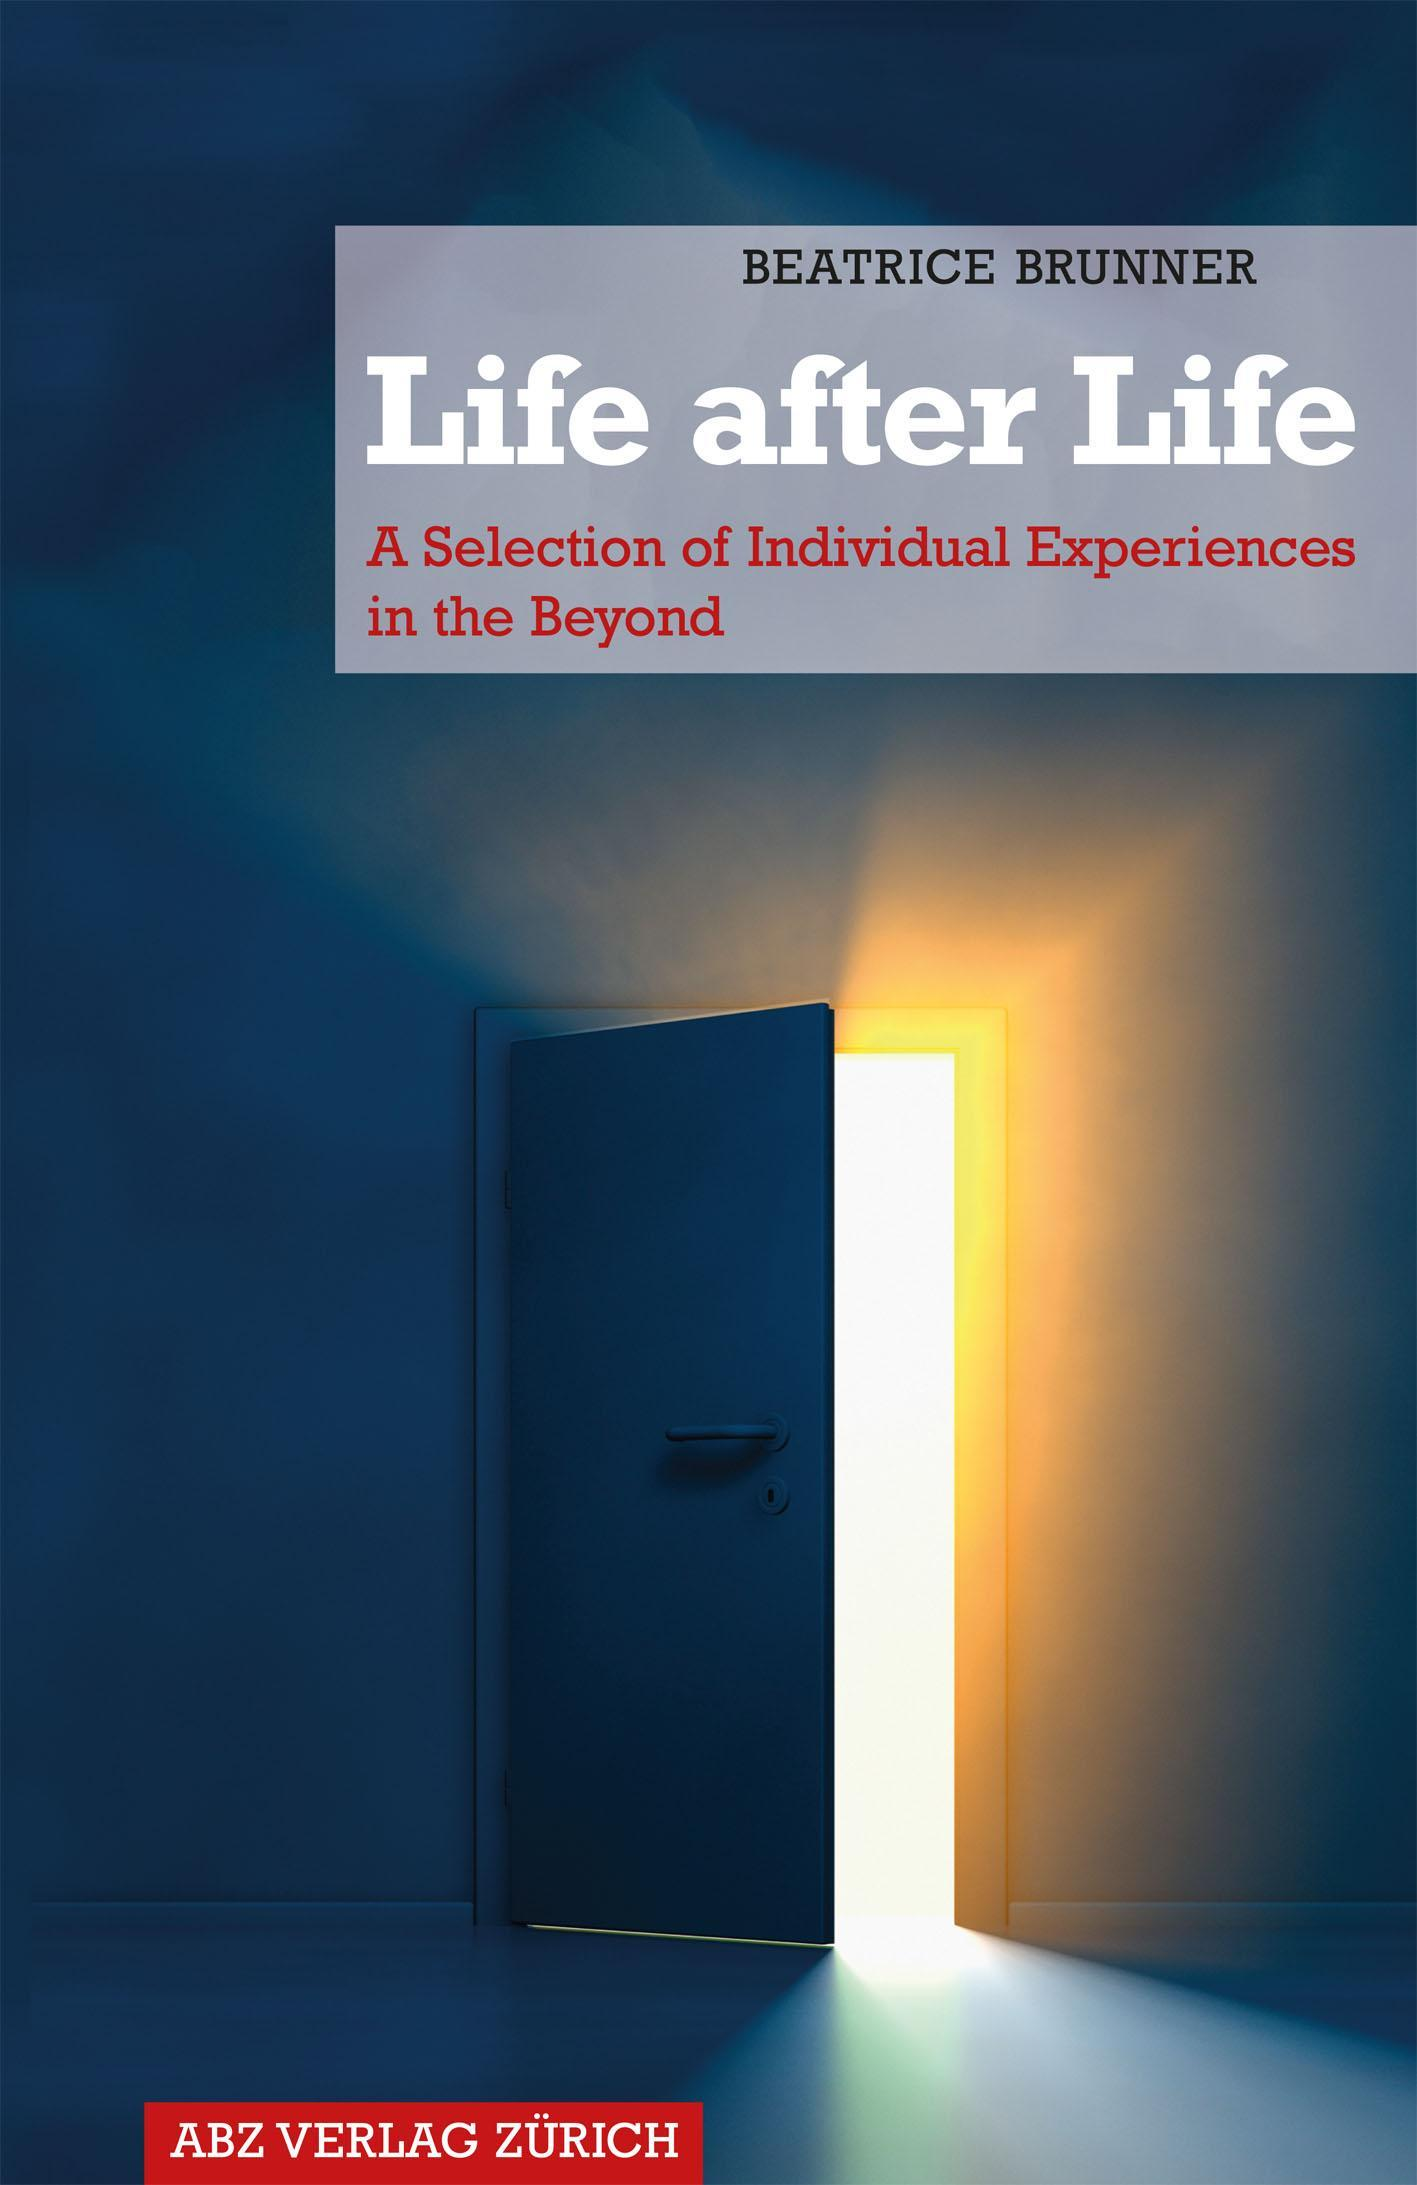 Cover of the Book Life after Life – A Selection of Individual Experiences in the Beyond by Medium Beatrice Brunner